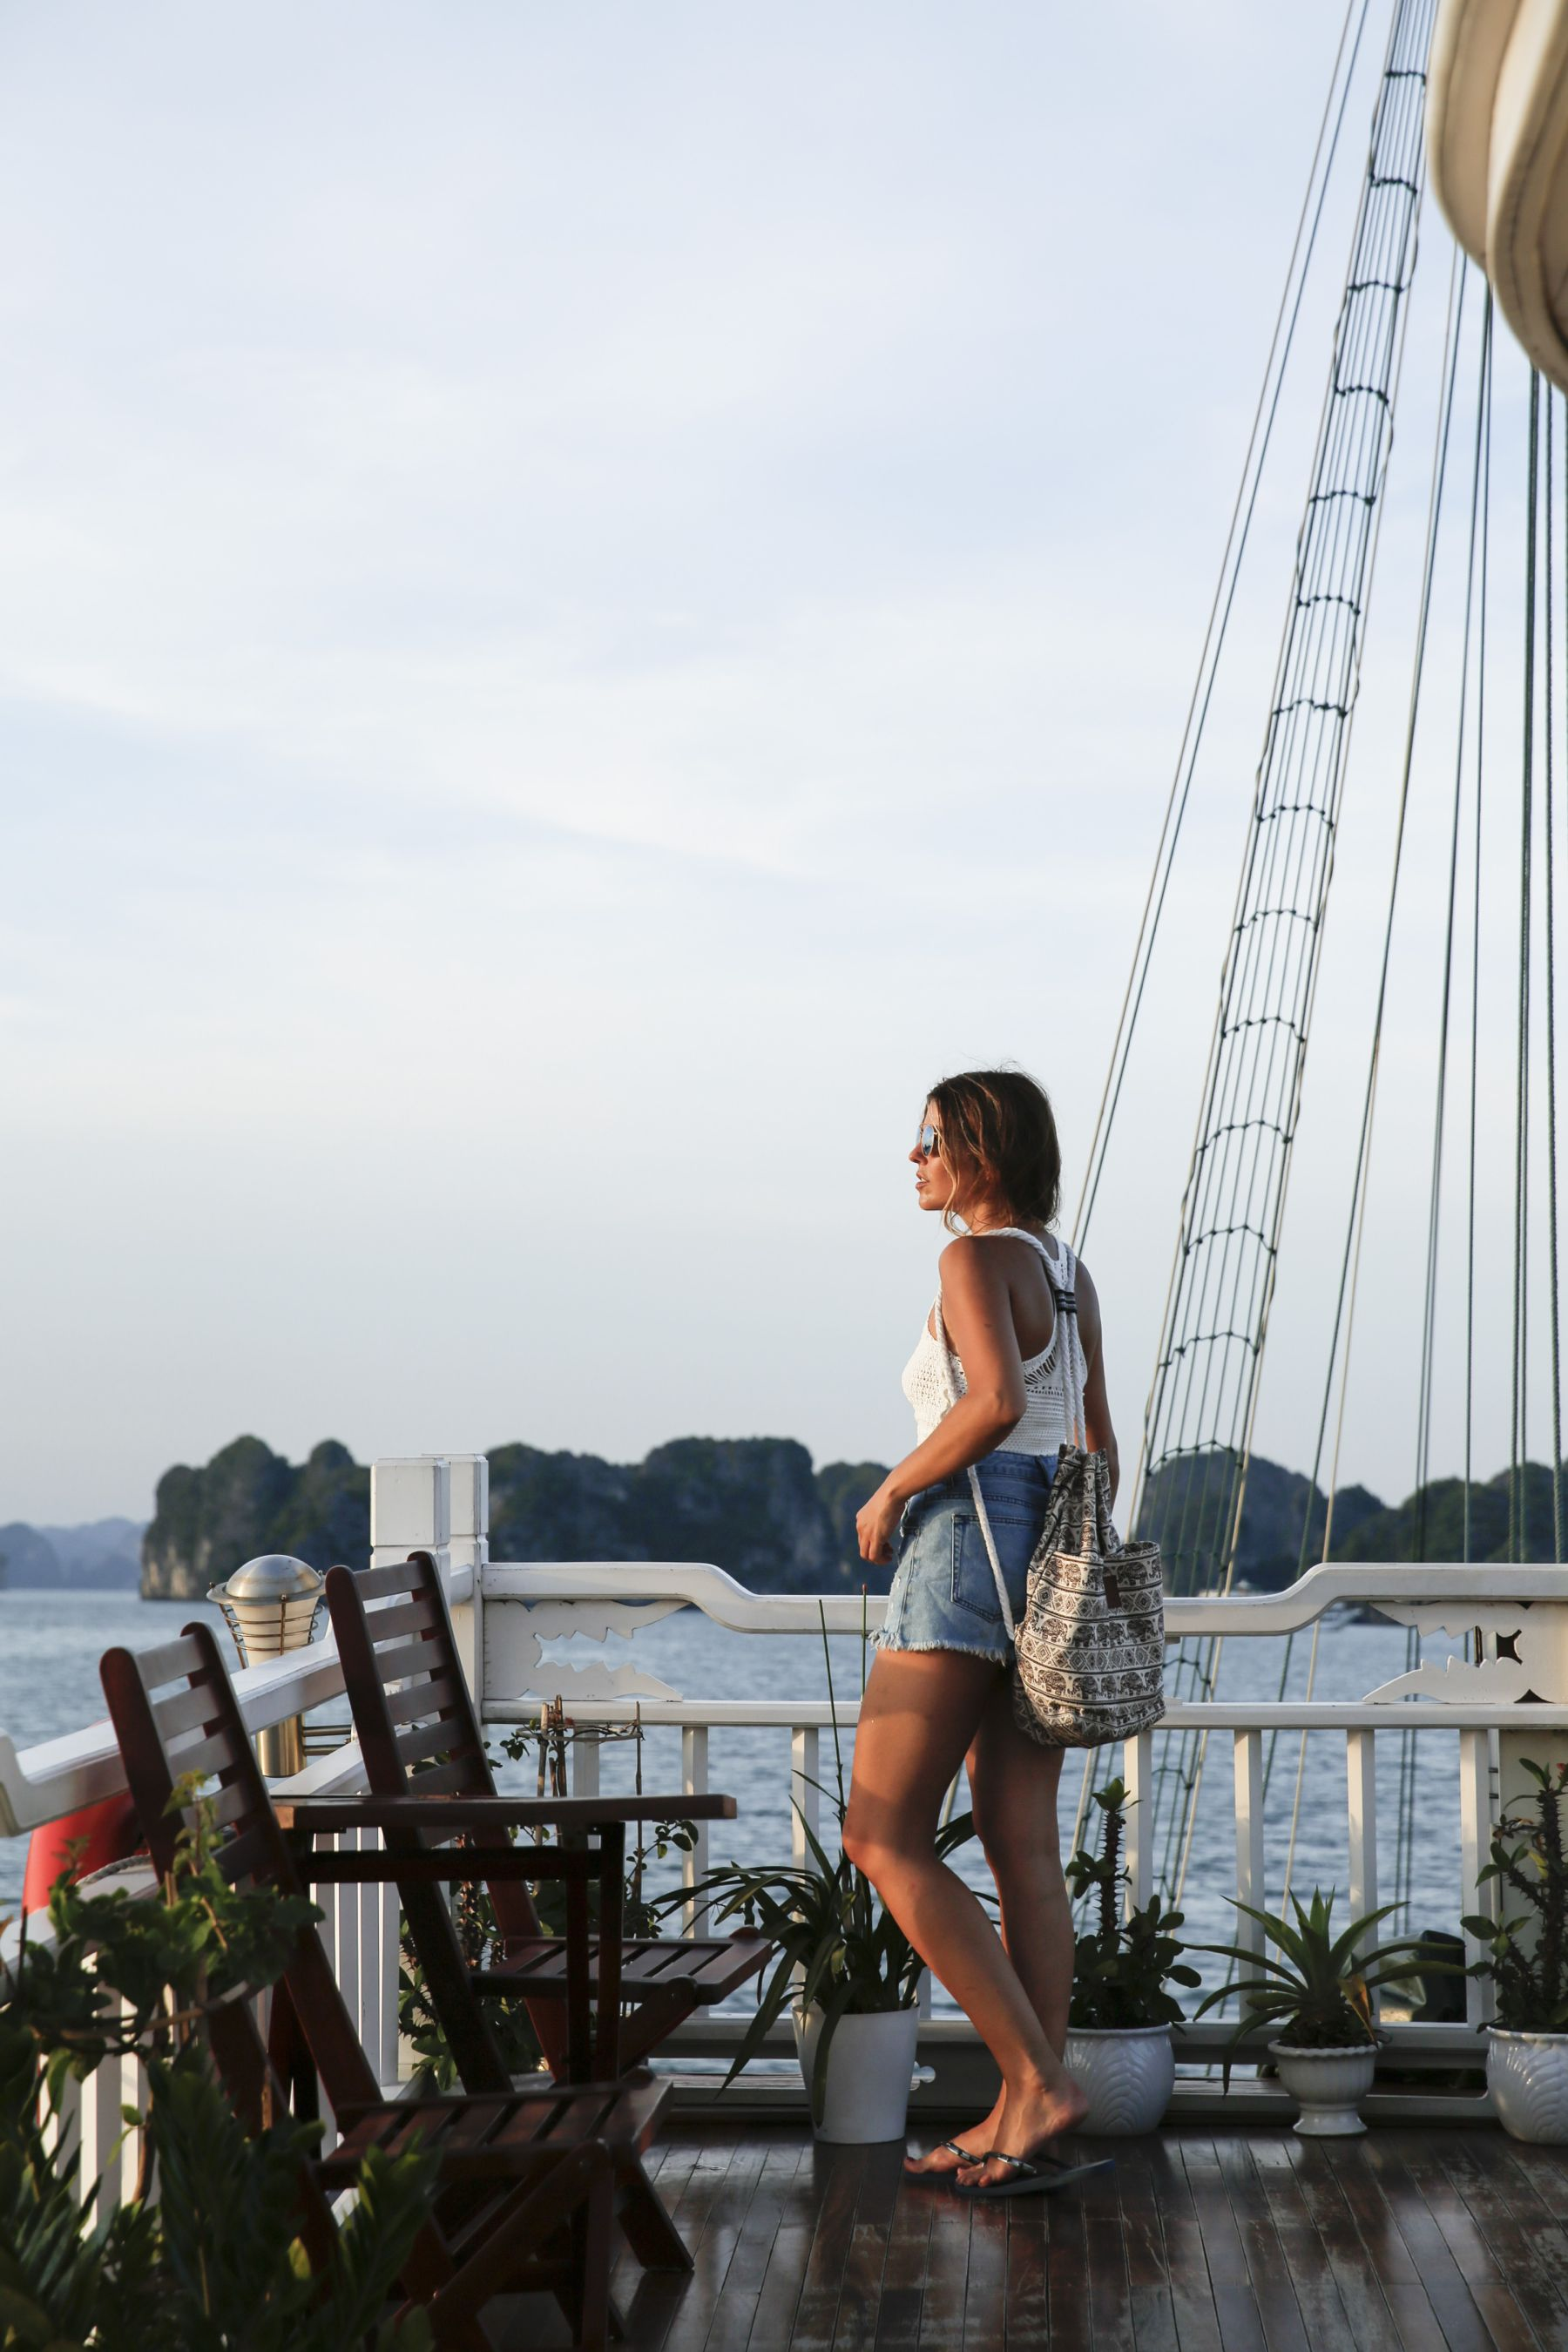 halong bay bahia vietnam excursiones barco trendy taste summer outfit look havaianas shorts denim top crochet pull and bear sunglasses_13